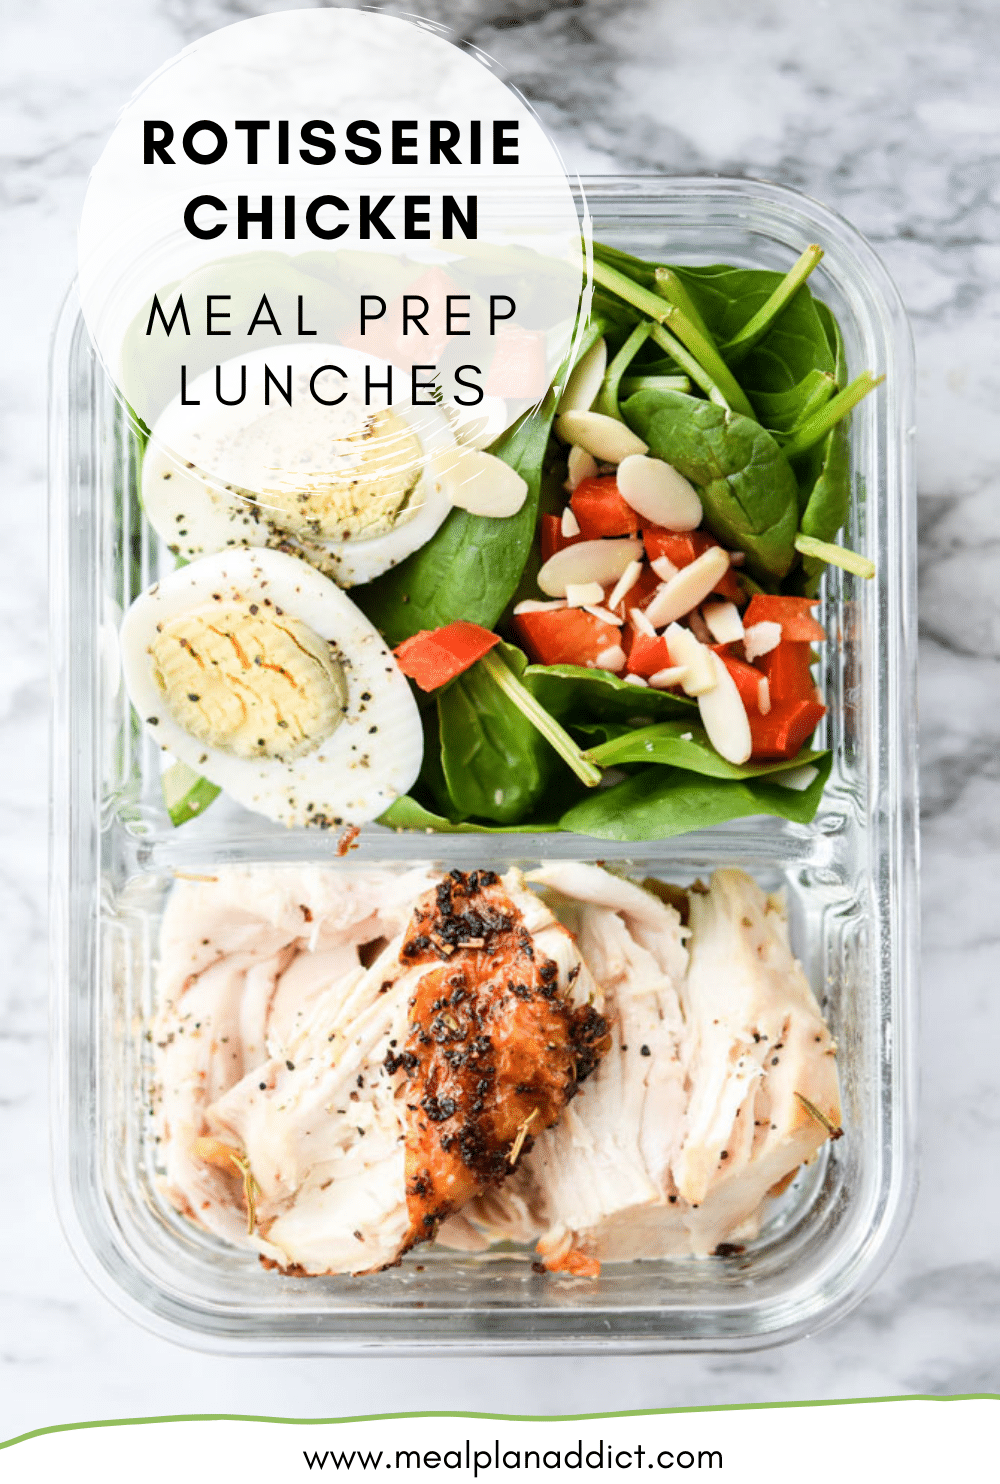 Rotisserie Chicken Meal Prep Lunches